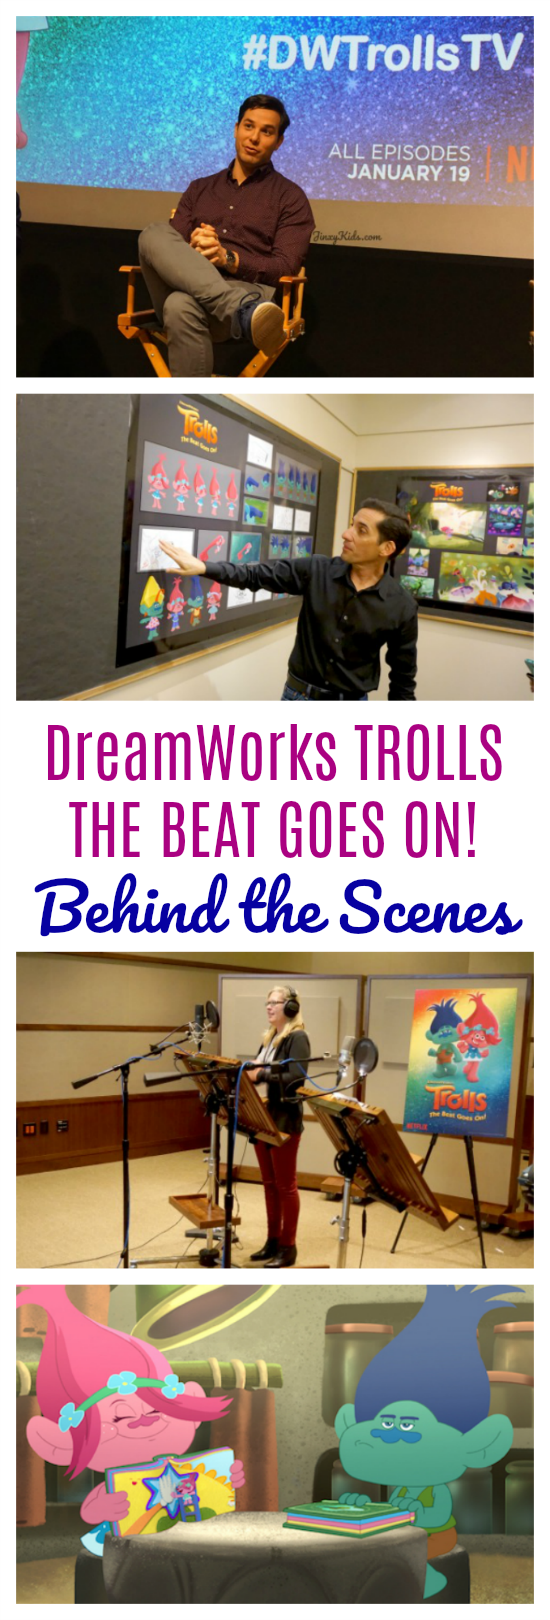 DreamWorks: TROLLS THE BEAT GOES ON! Behind the Scenes - Take a peak into the creation of Trolls: The Beat Goes On! with interviews with stars Skylar Astin and Amanda Leighton, producer Matthew Beans, musical director Alana Da Fonseca, a peak into the recording booth and lots more! #DWTrollsTV #Trolls #DreamWorks #Animation #Entertainment